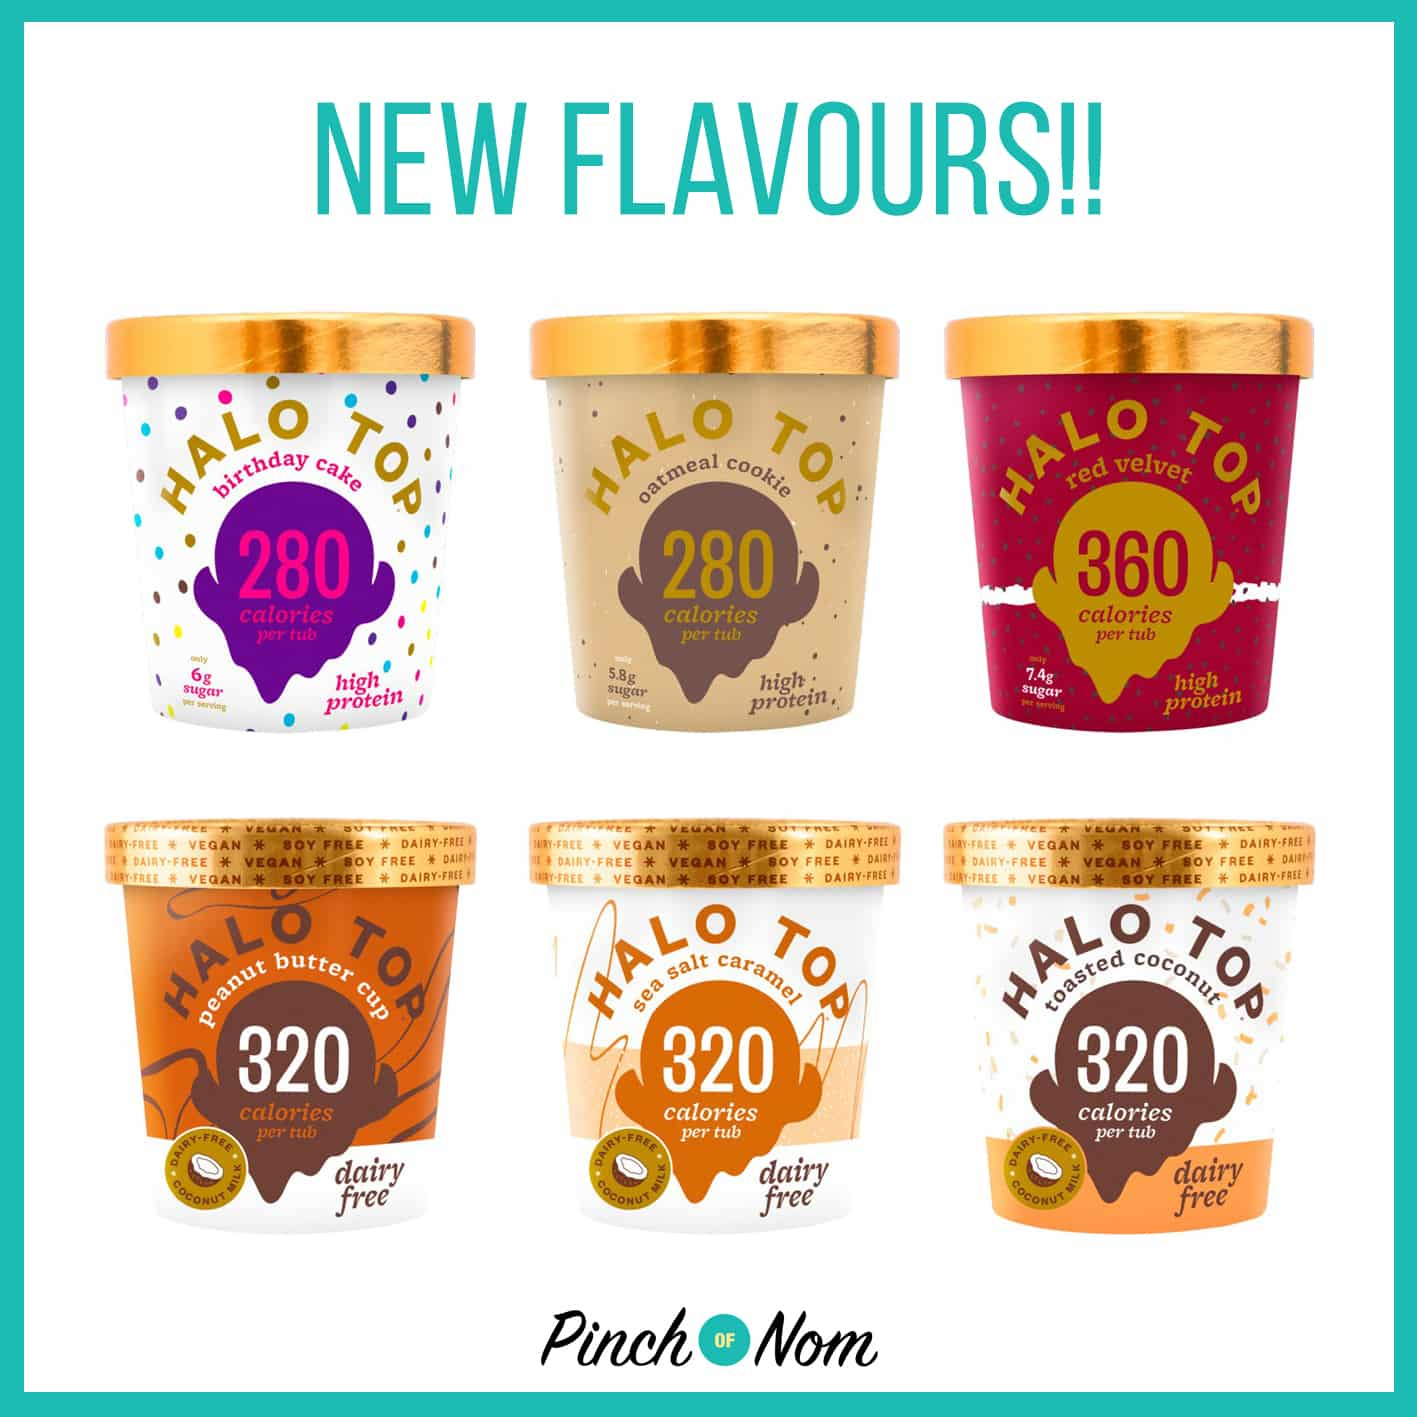 Halo Top Launching New Flavours And Non-Dairy Options | Slimming World